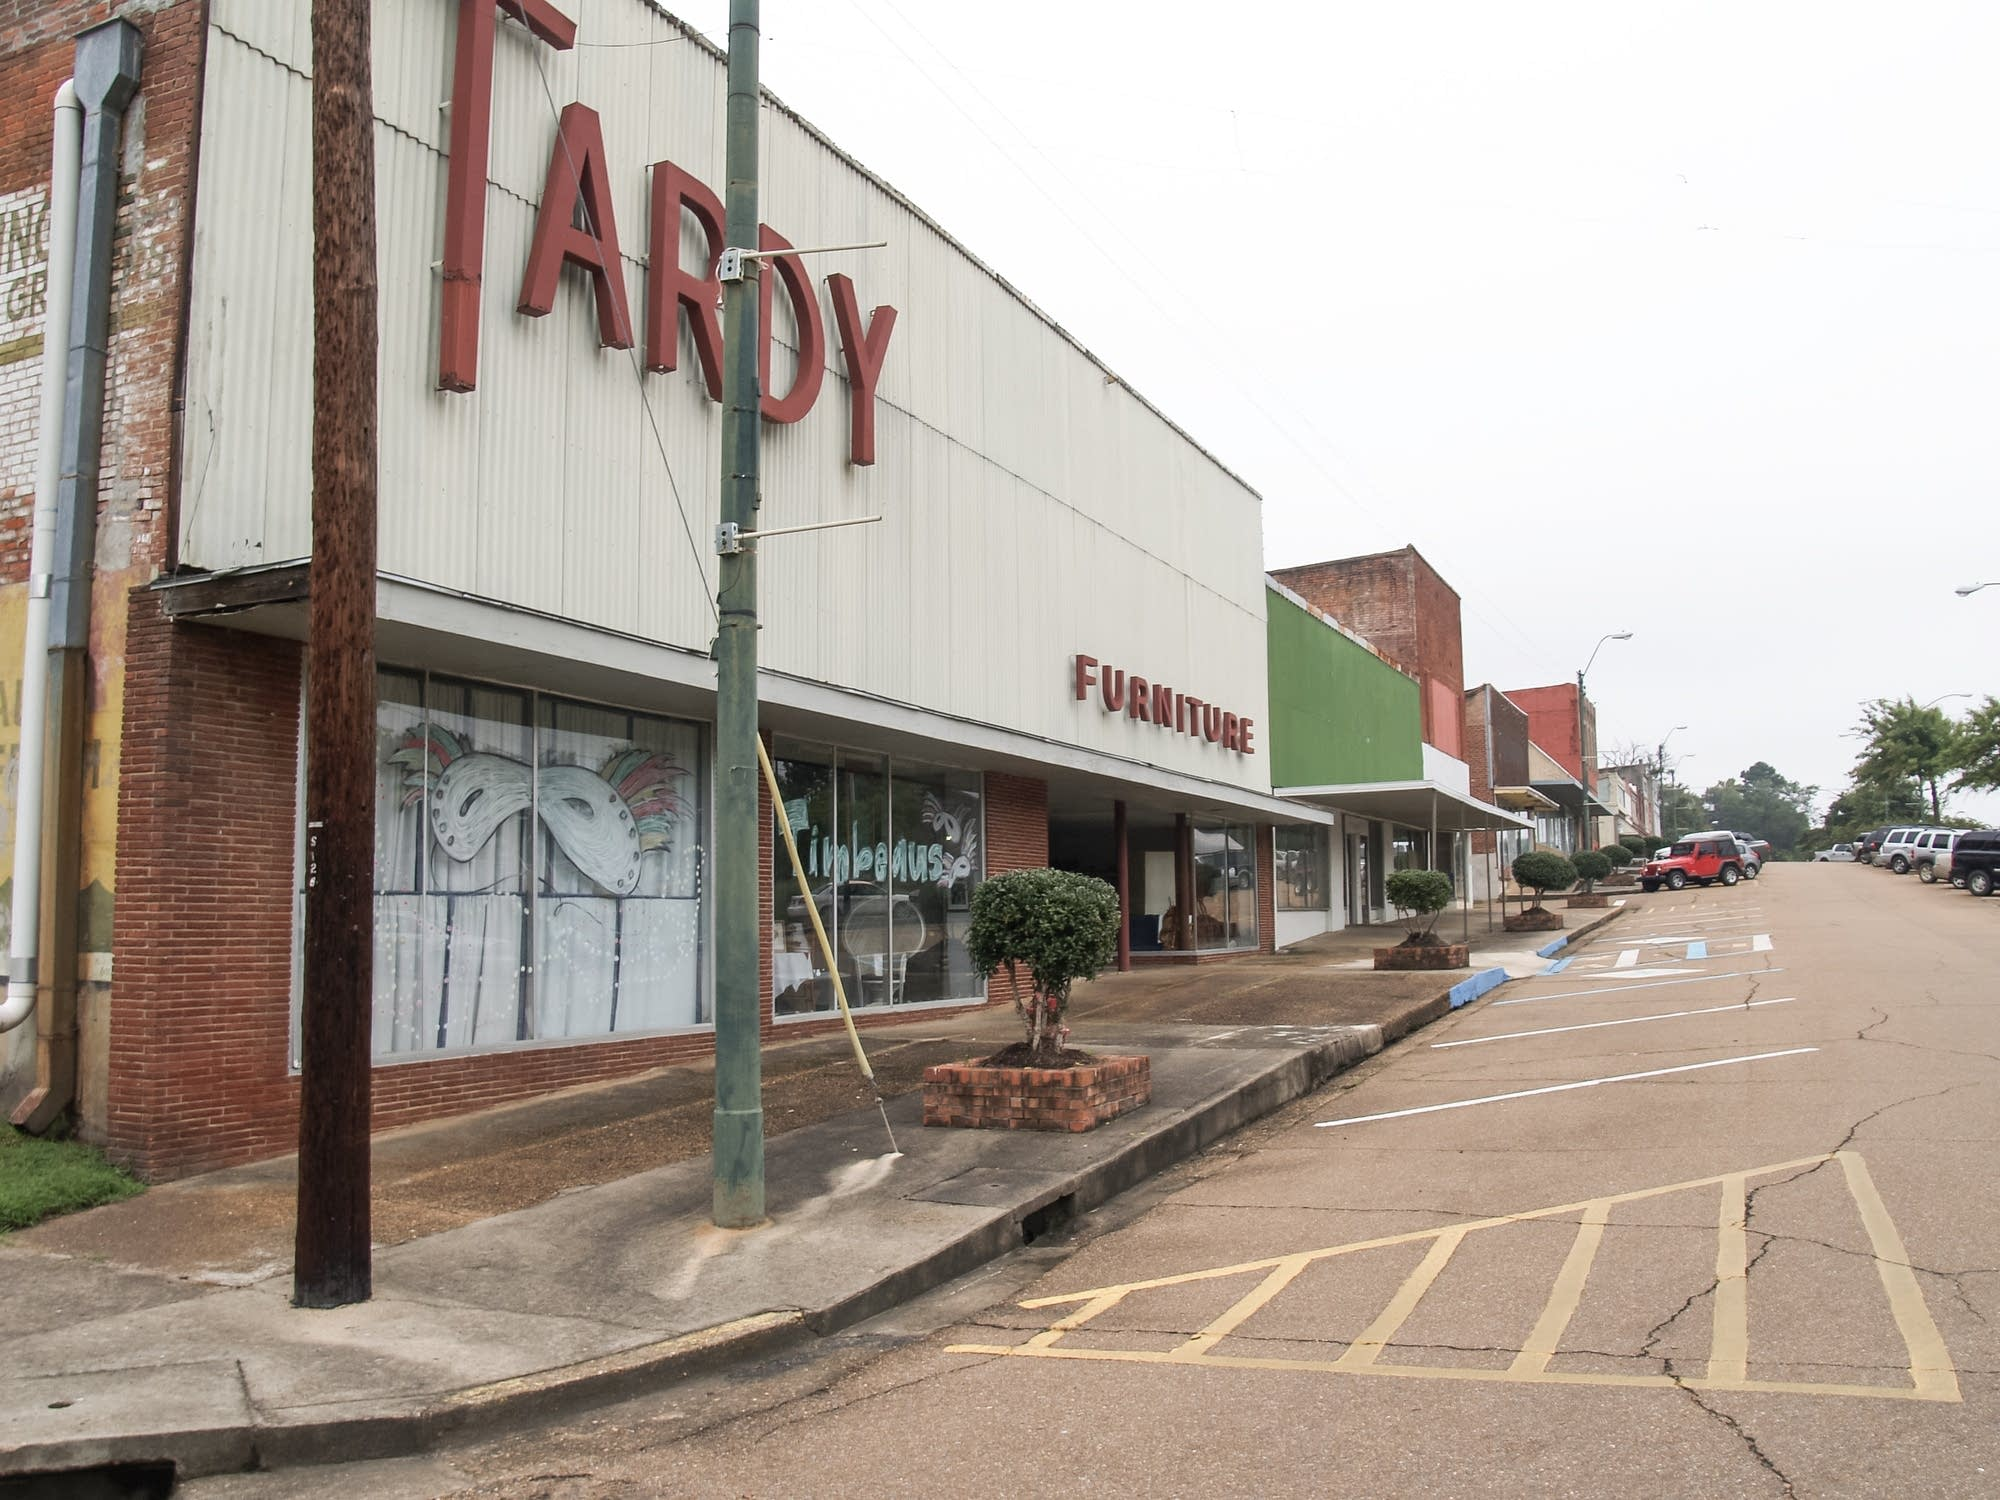 Tardy Furniture Store